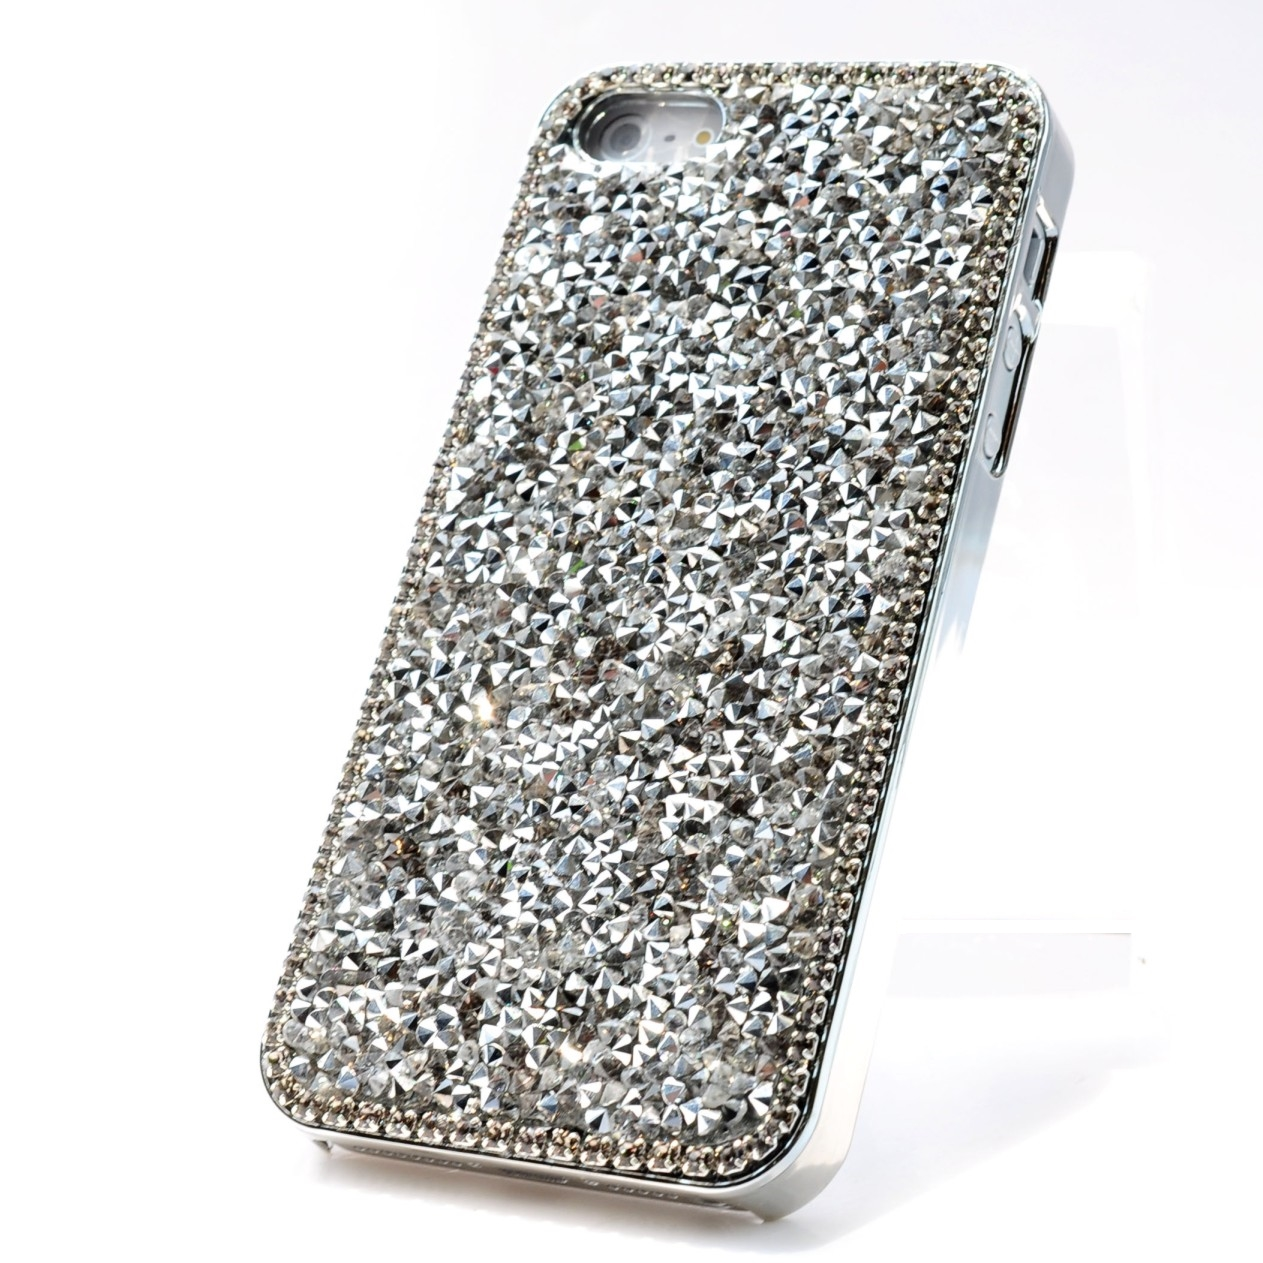 bling crystal phone case